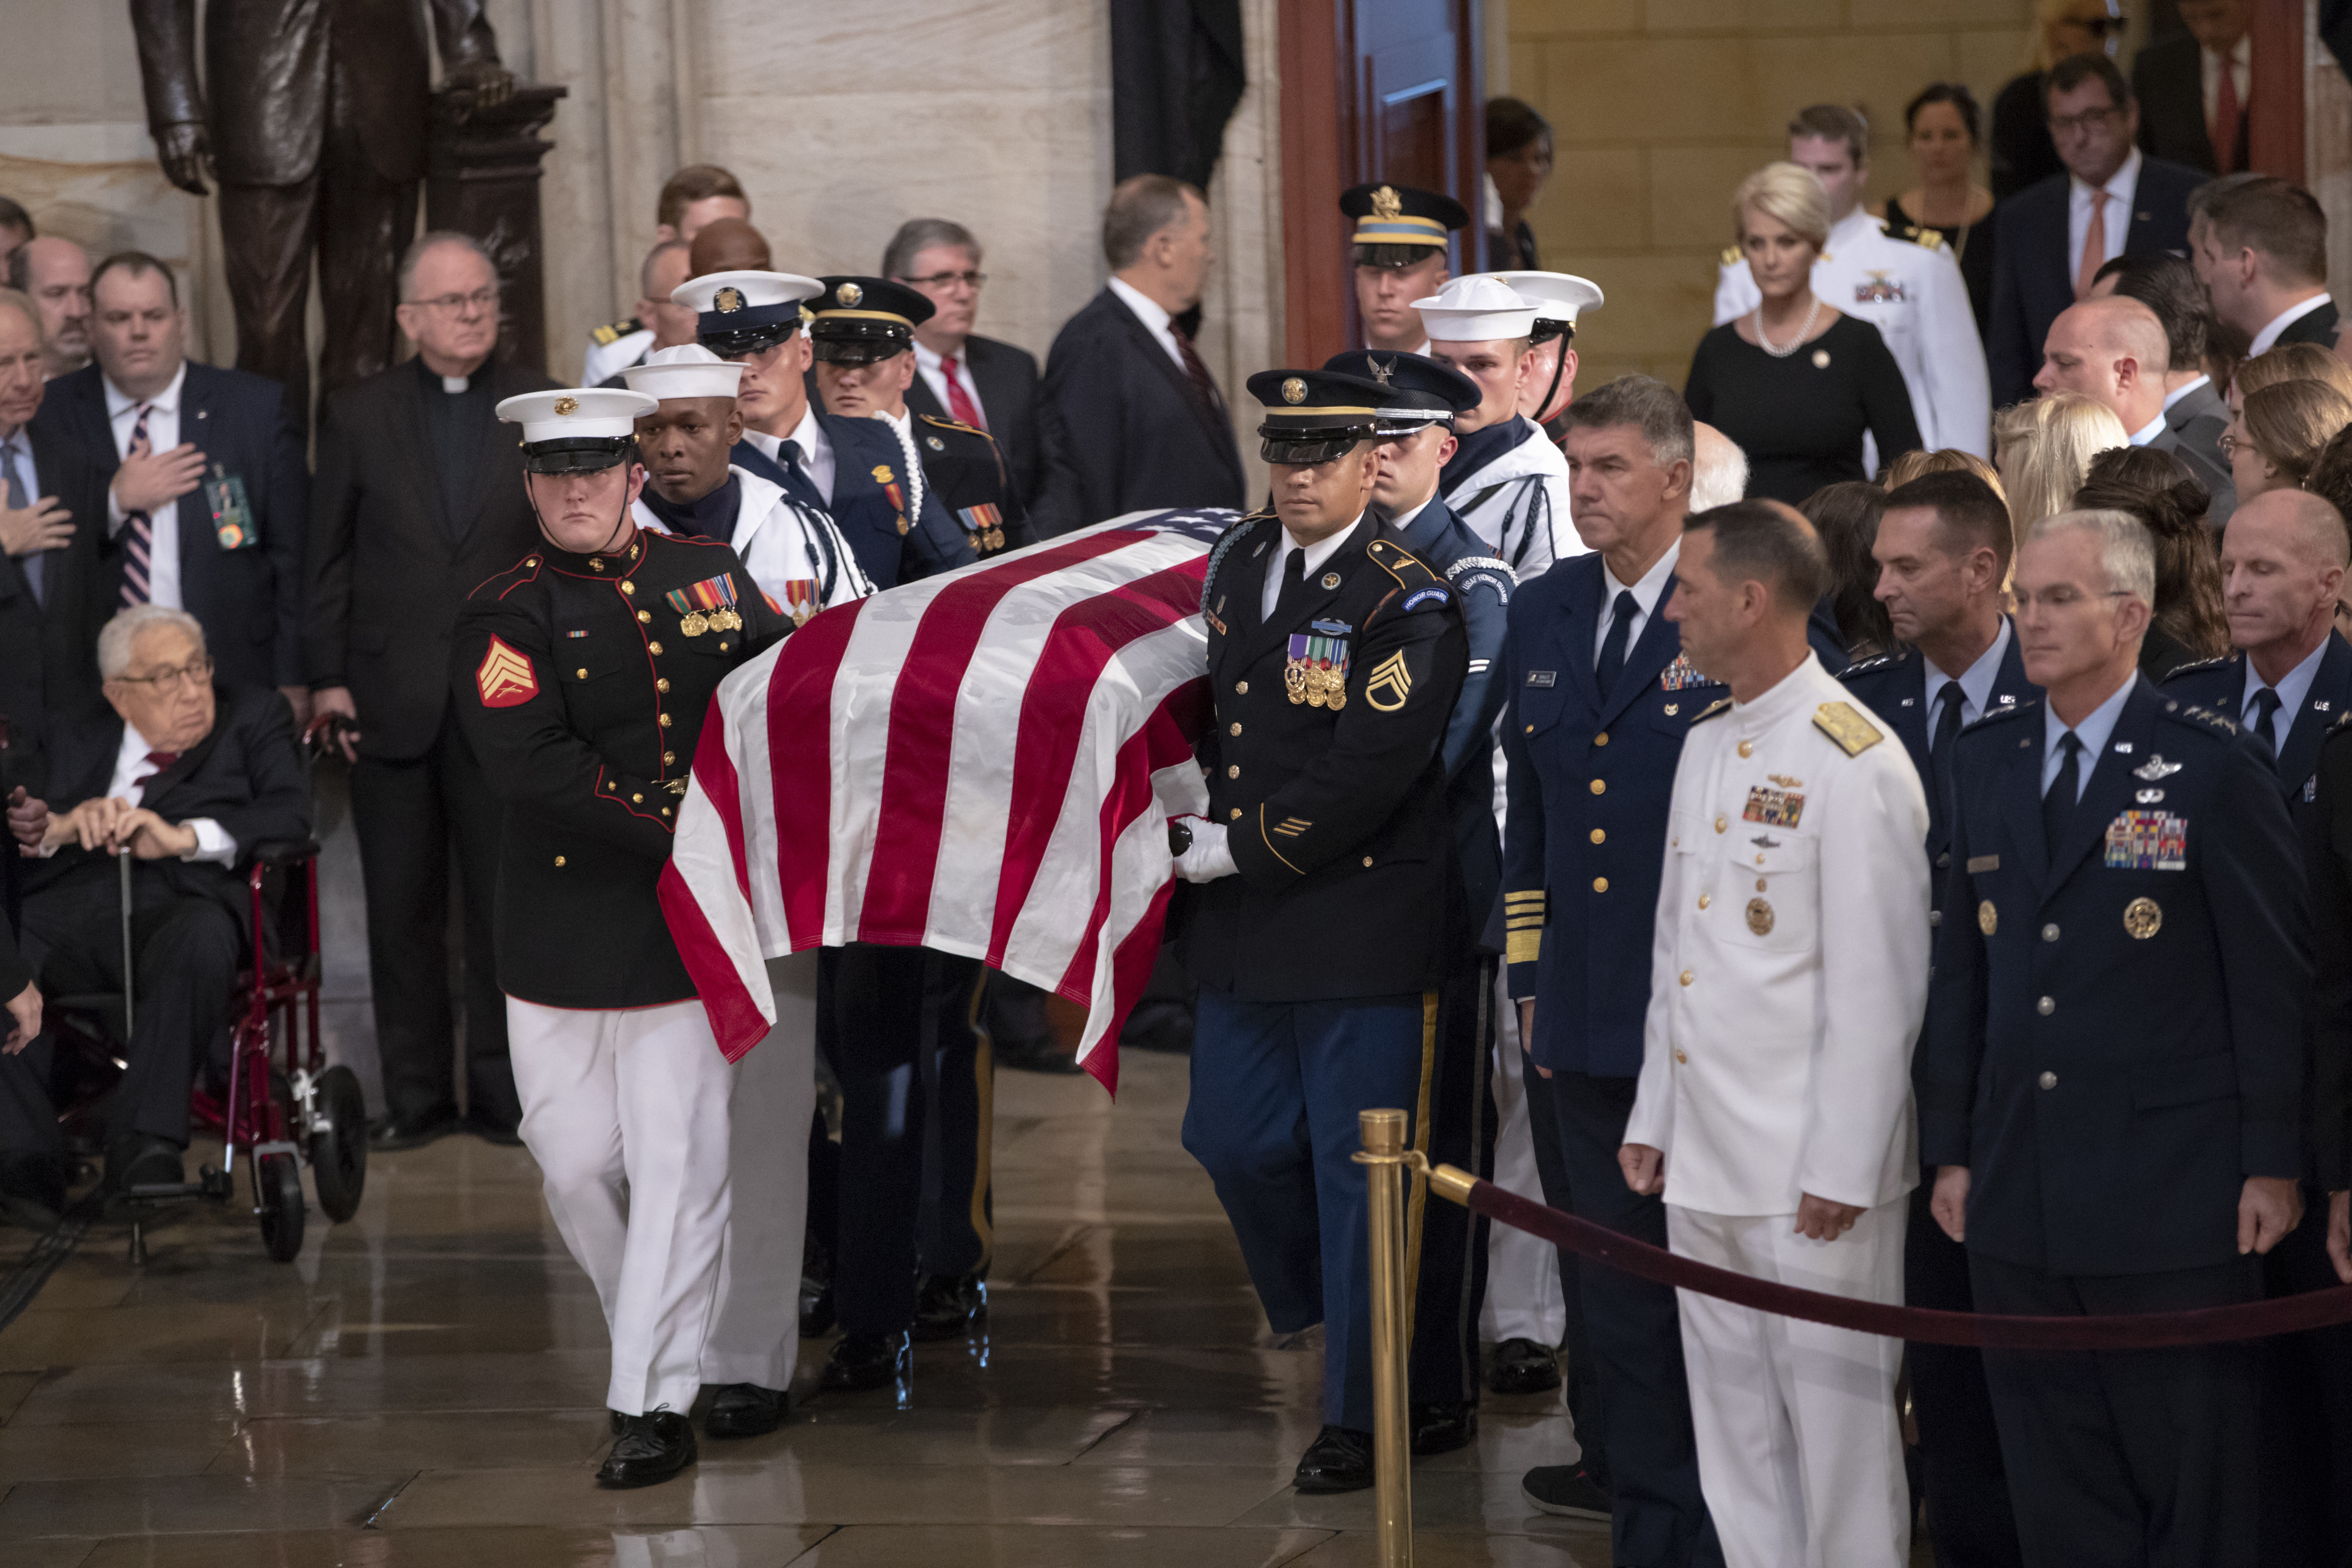 The flag-draped casket bearing the remains of Sen. John McCain of Arizona is carried into the Capitol Rotunda, followed by his widow, Cindy McCain, upper right, for a farewell ceremony and public visitation on Aug. 31, 2018 in Washington.